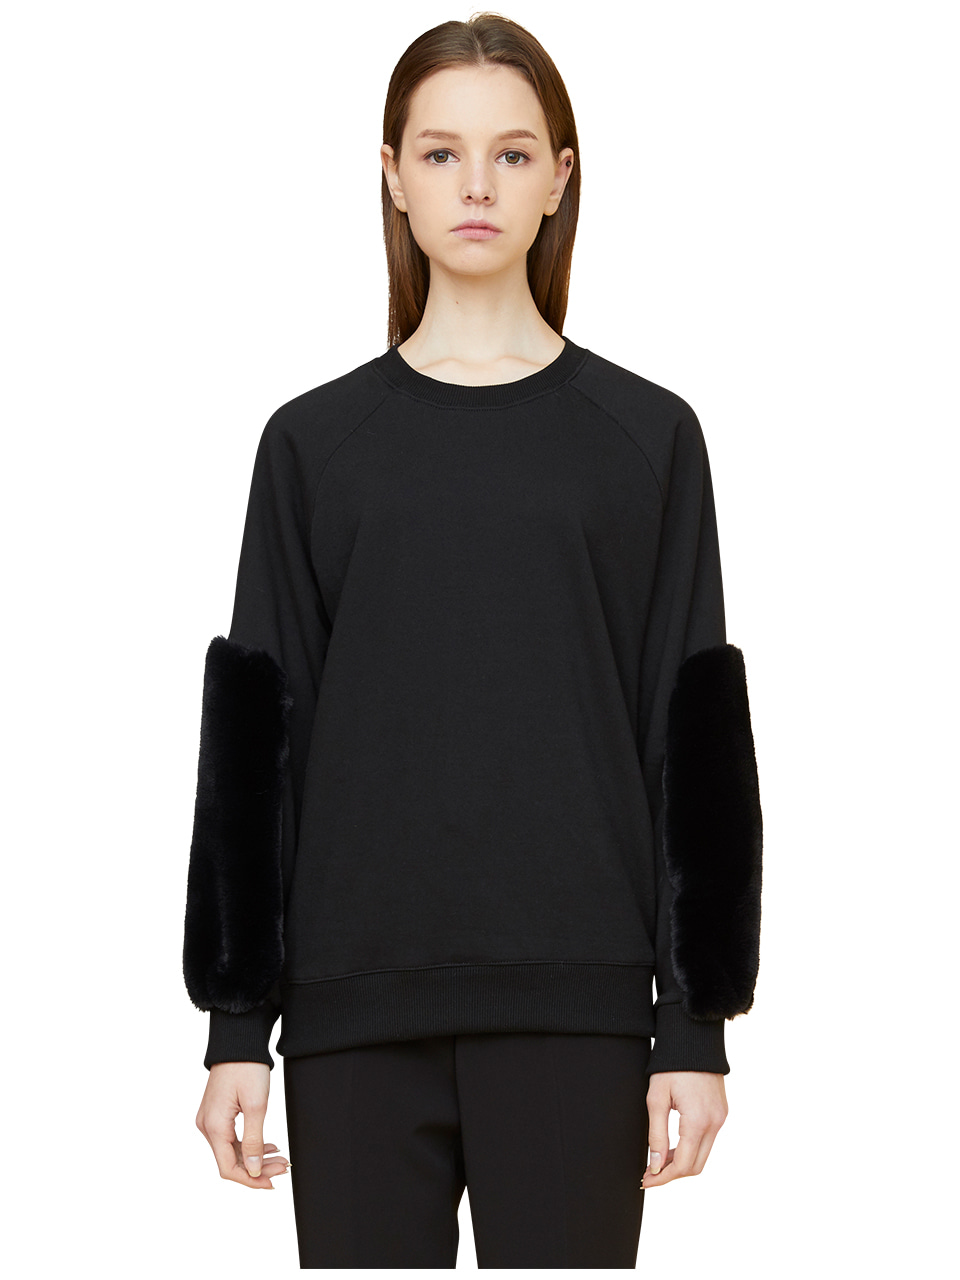 barni sweatshirts - black